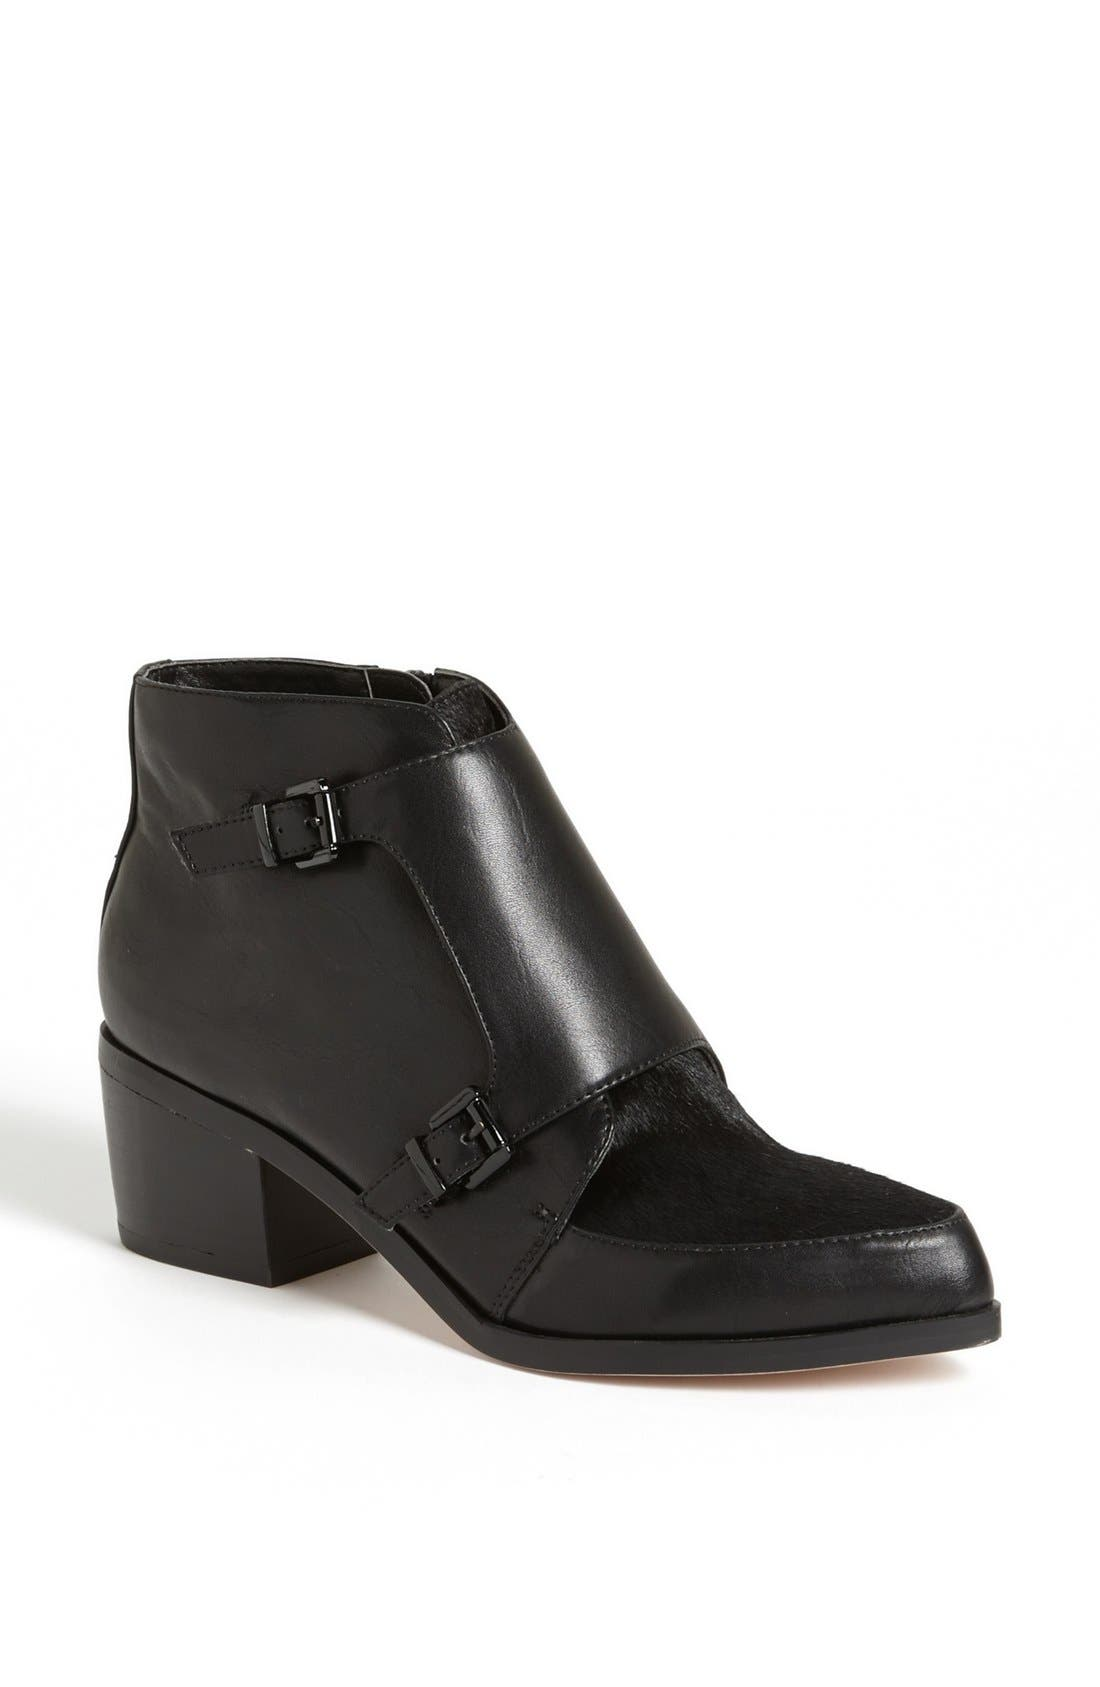 Alternate Image 1 Selected - Topshop 'Acute' Monk Strap Bootie